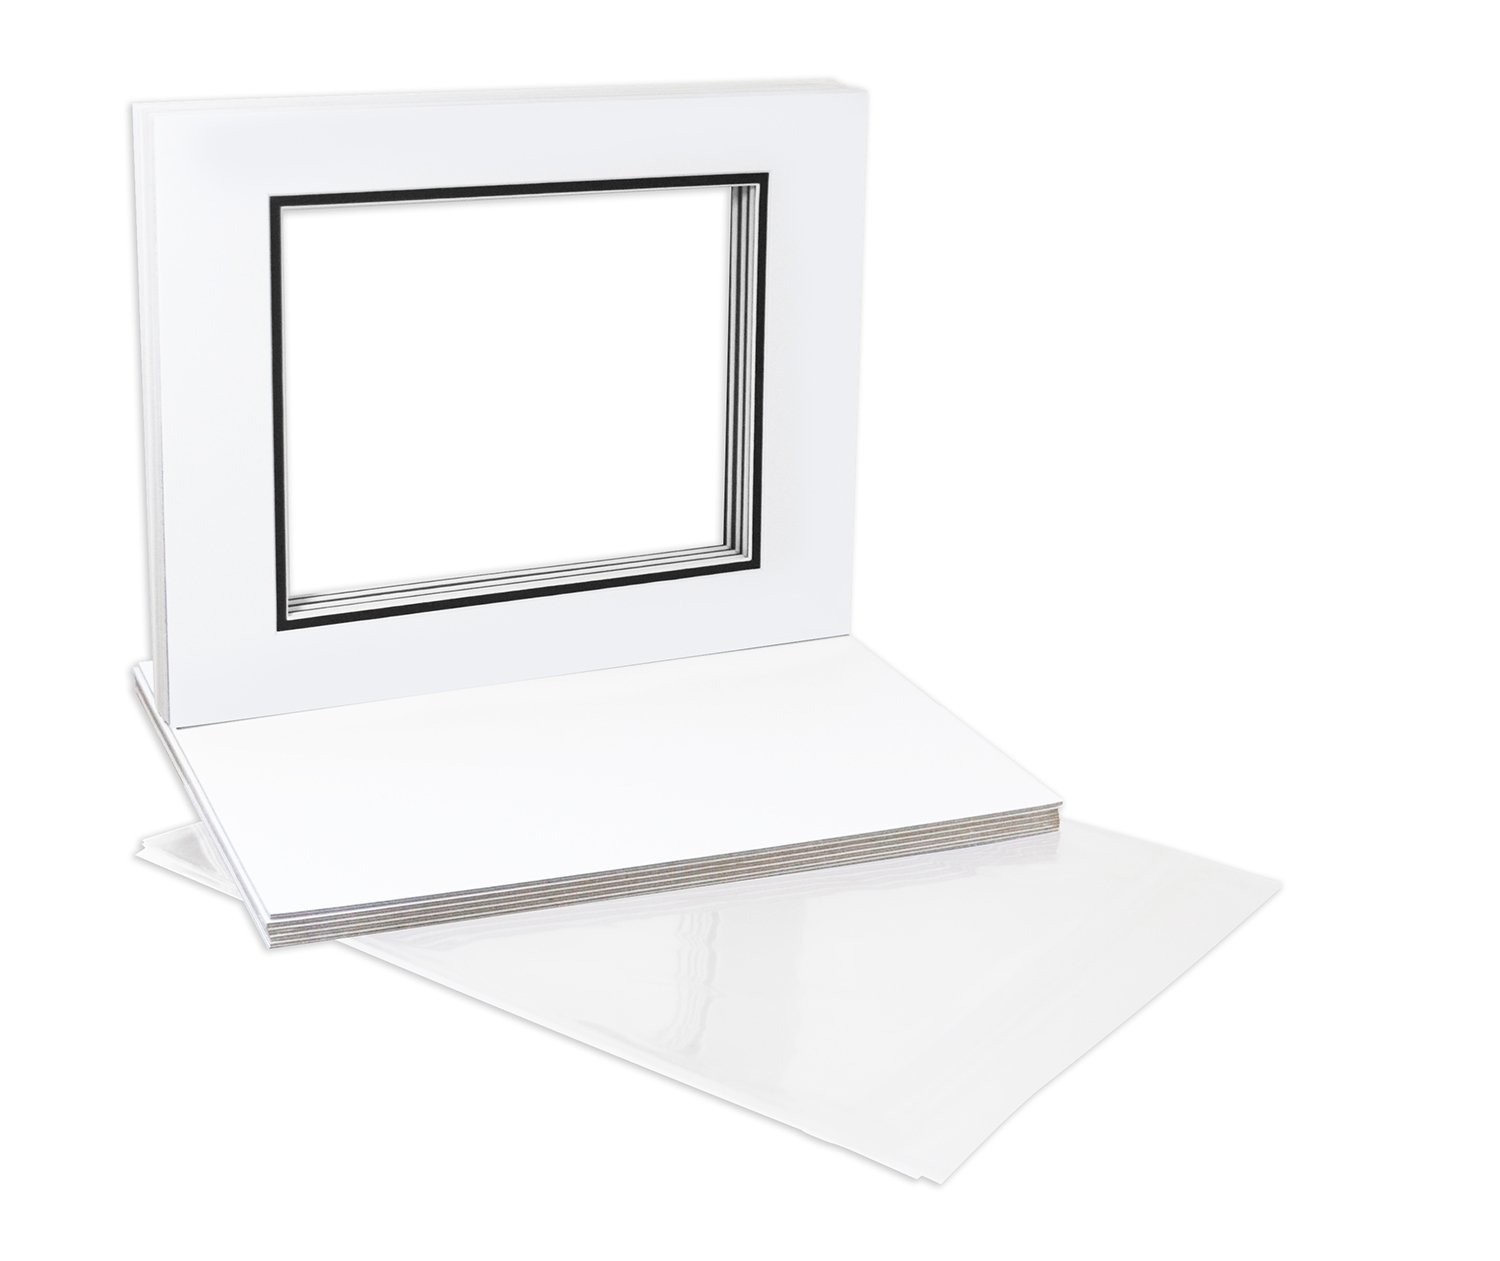 Golden State Art NS501142-10Kit Pack of 10 16x20 White/Black Double Mats Mattes Core Bevel Cut for 11x14 Photo + Backing + Bags, 16'' x 20'' by Golden State Art